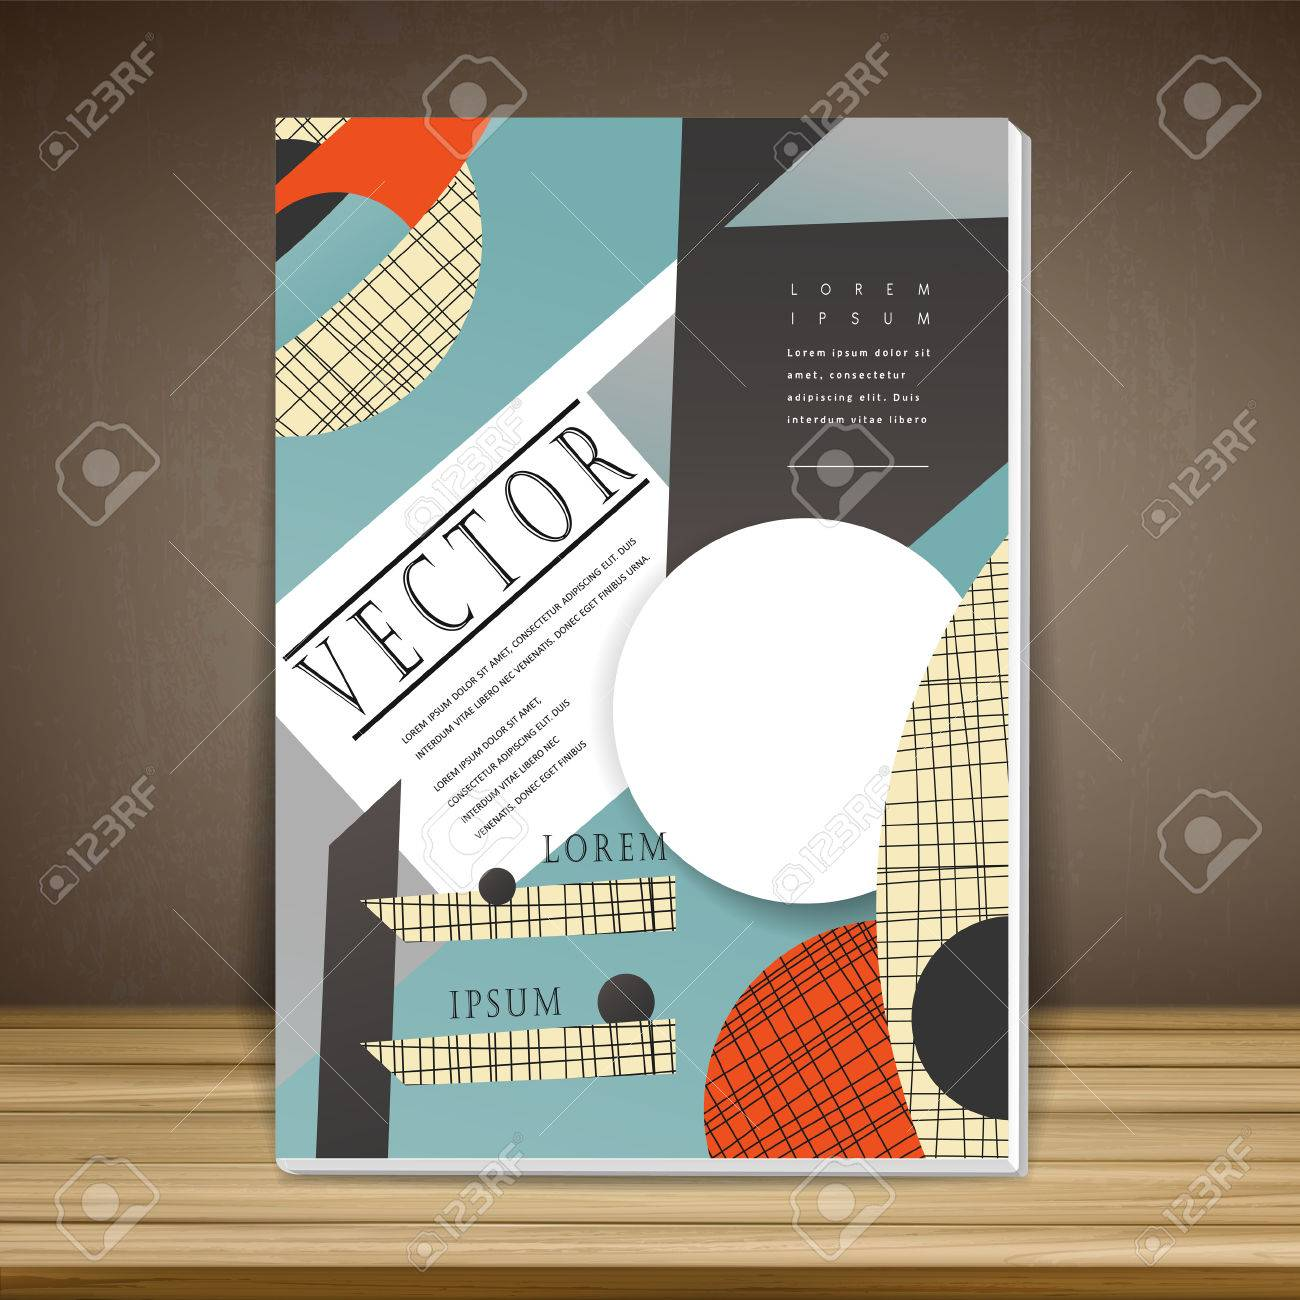 photo collage templates download free vector art stock.html